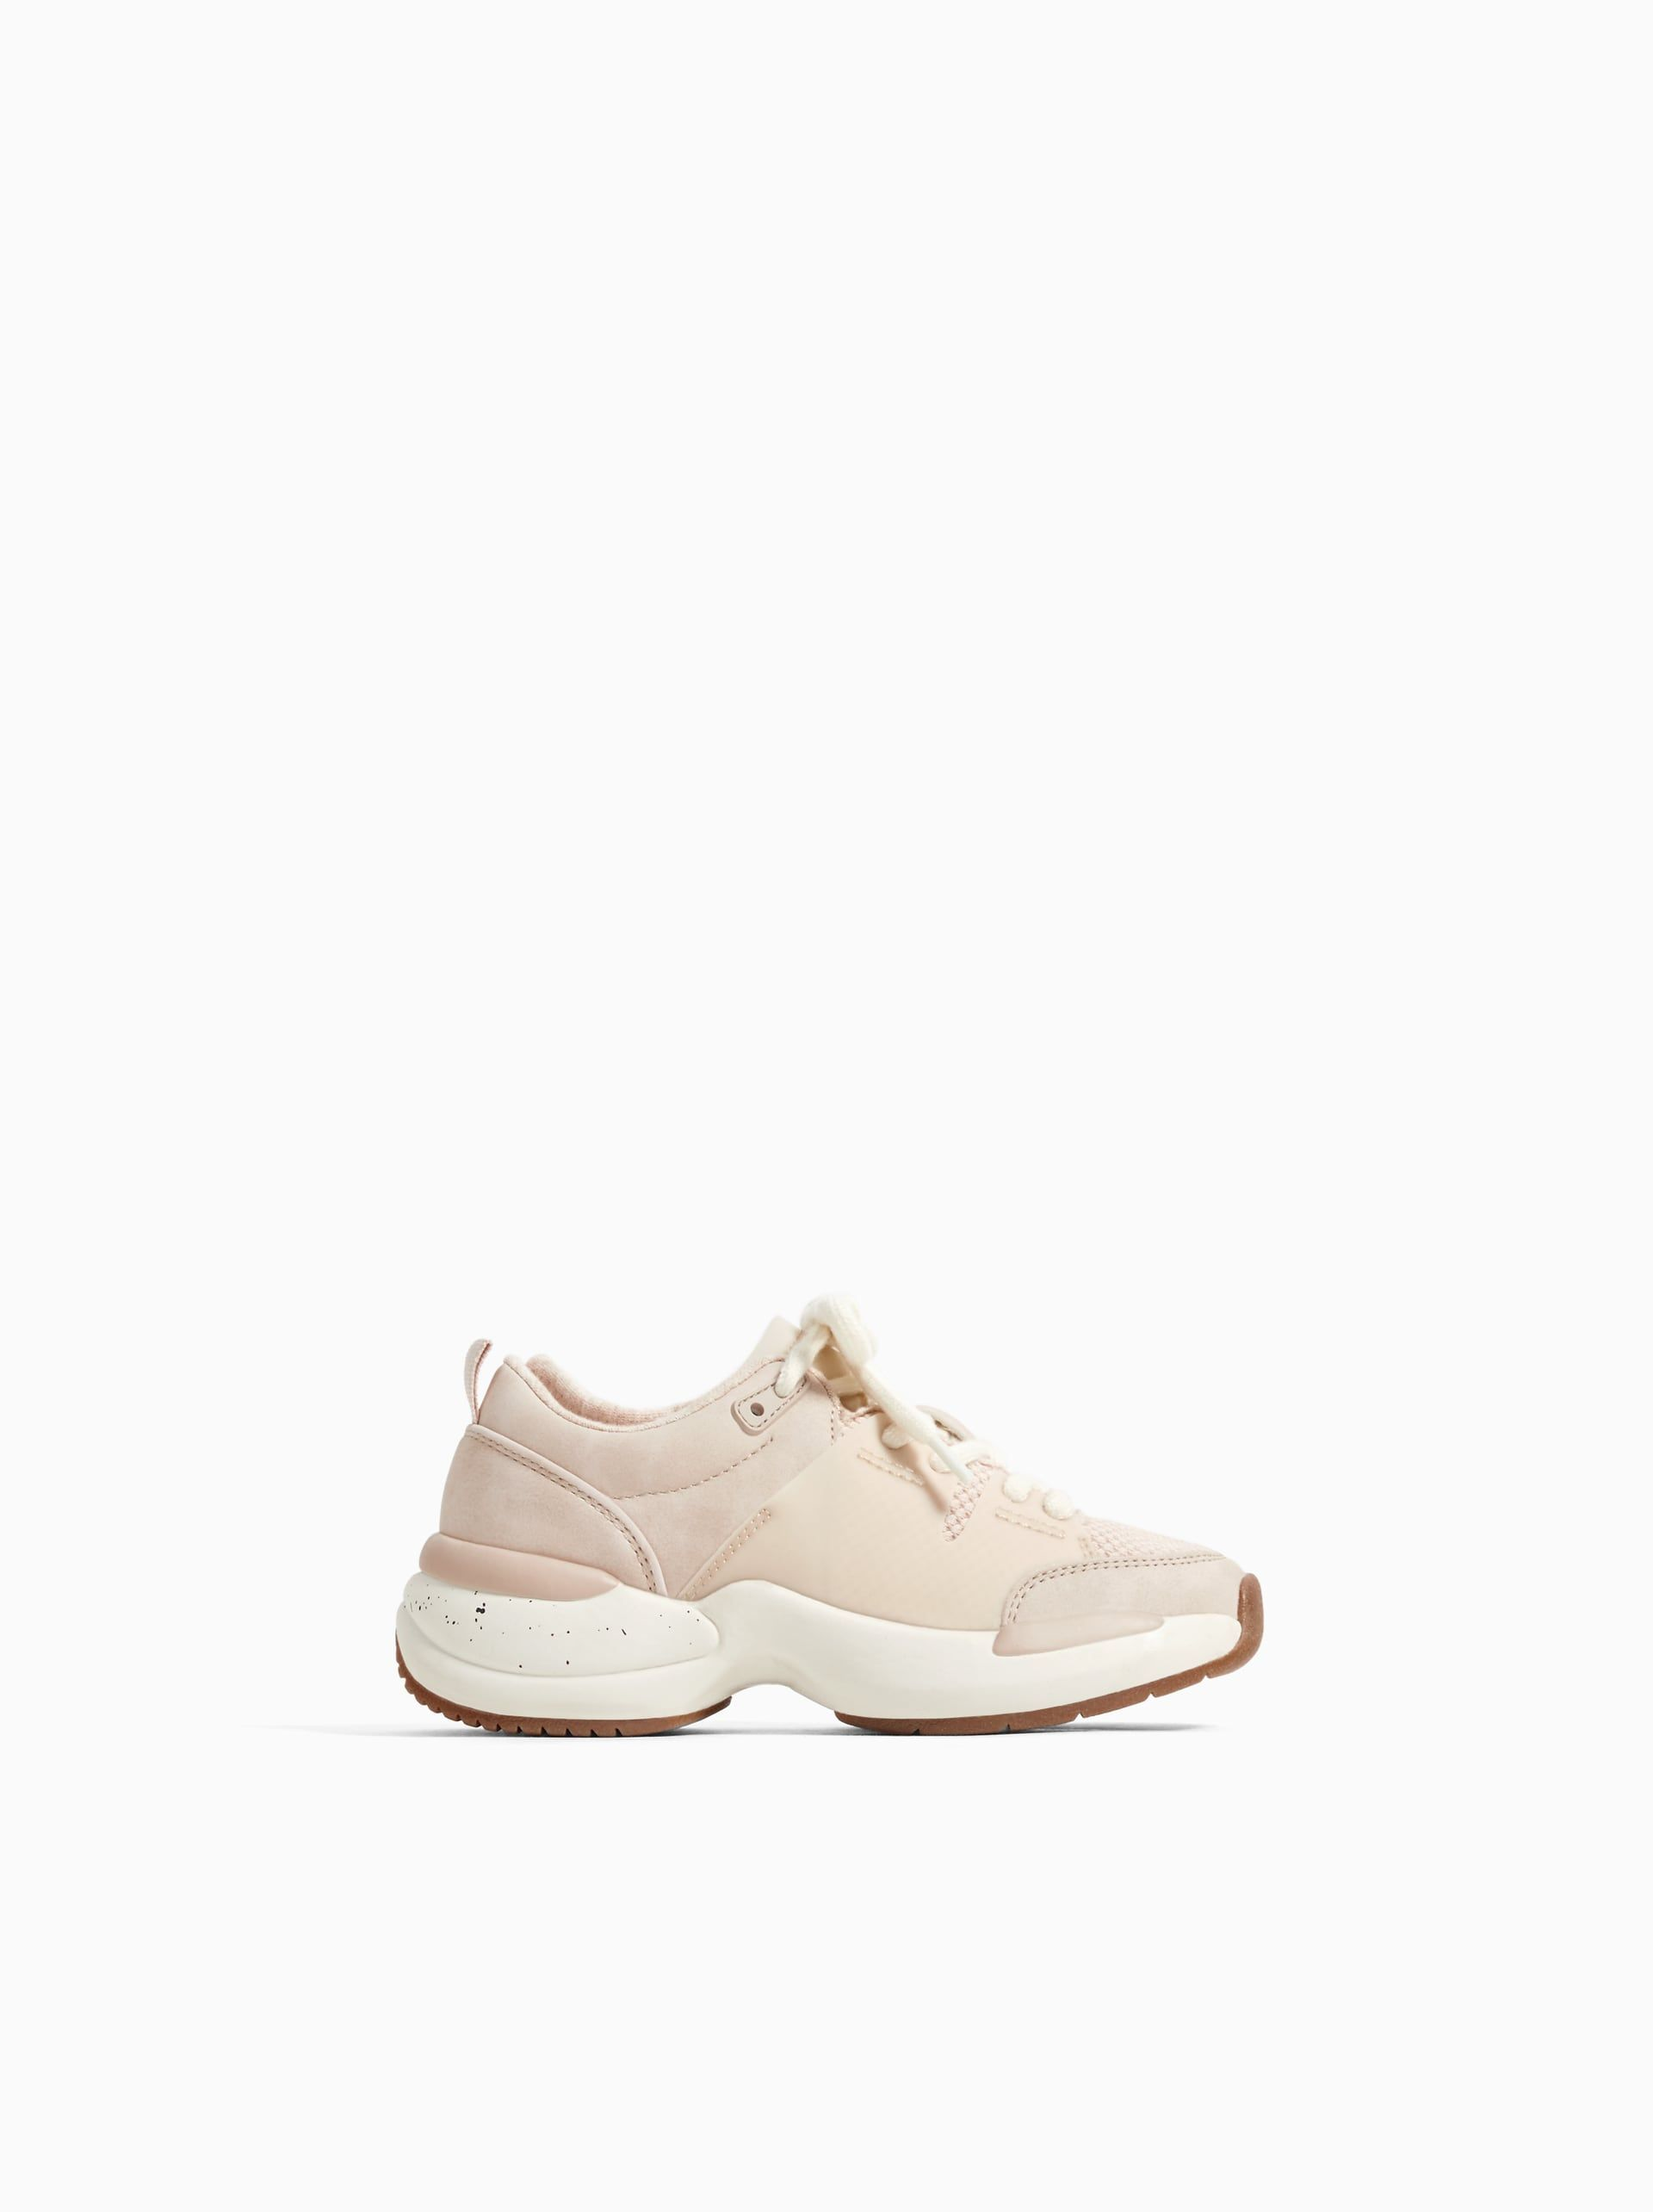 628351c441 DEPORTIVO PIEZA COLOR | Want | Zara shoes, Shoes sneakers, Sneakers